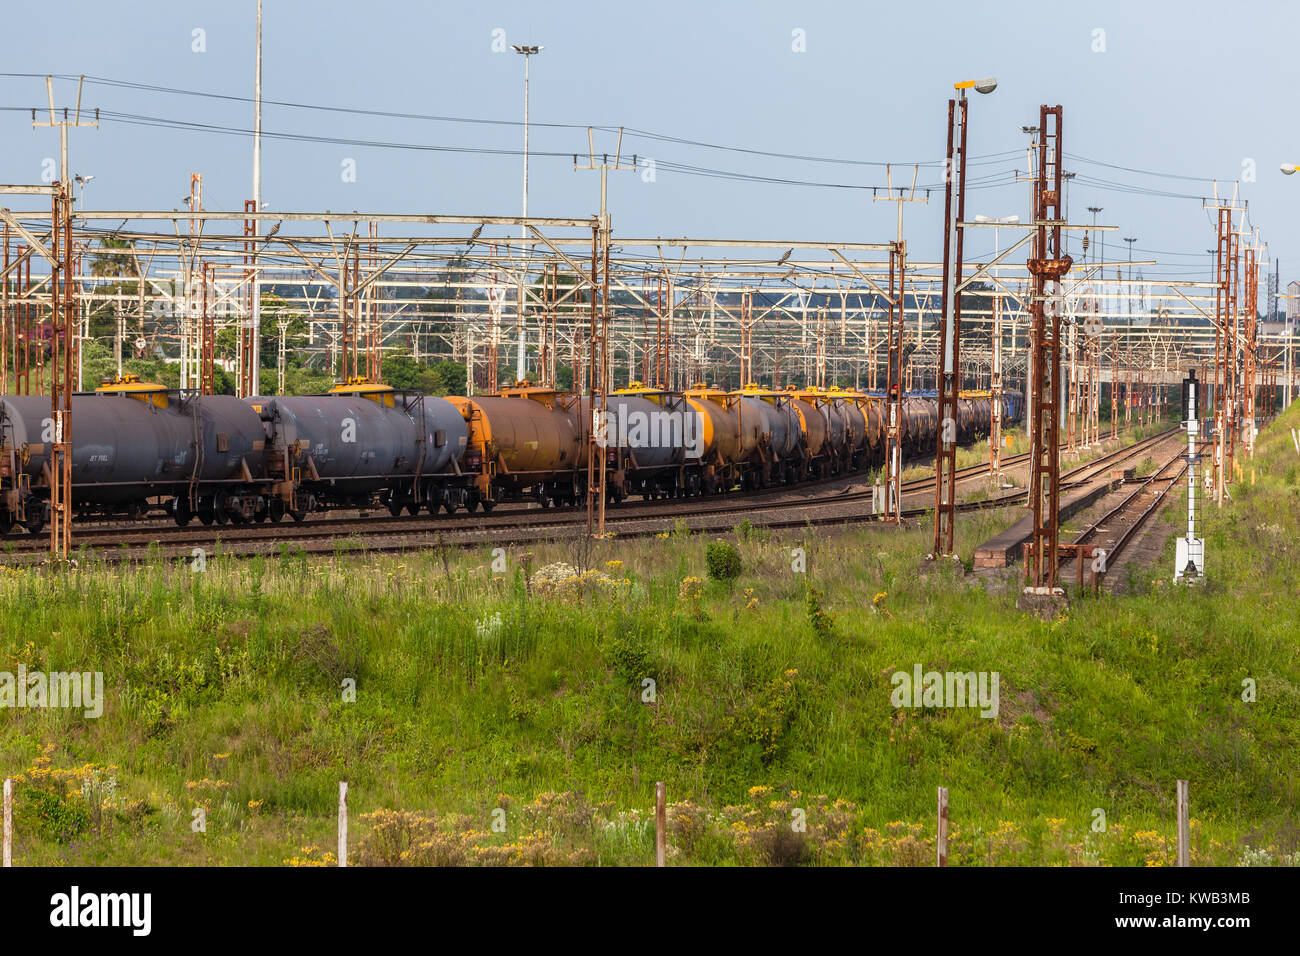 Train with cargo pulls into station transporting jet fuel tankers. - Stock Image